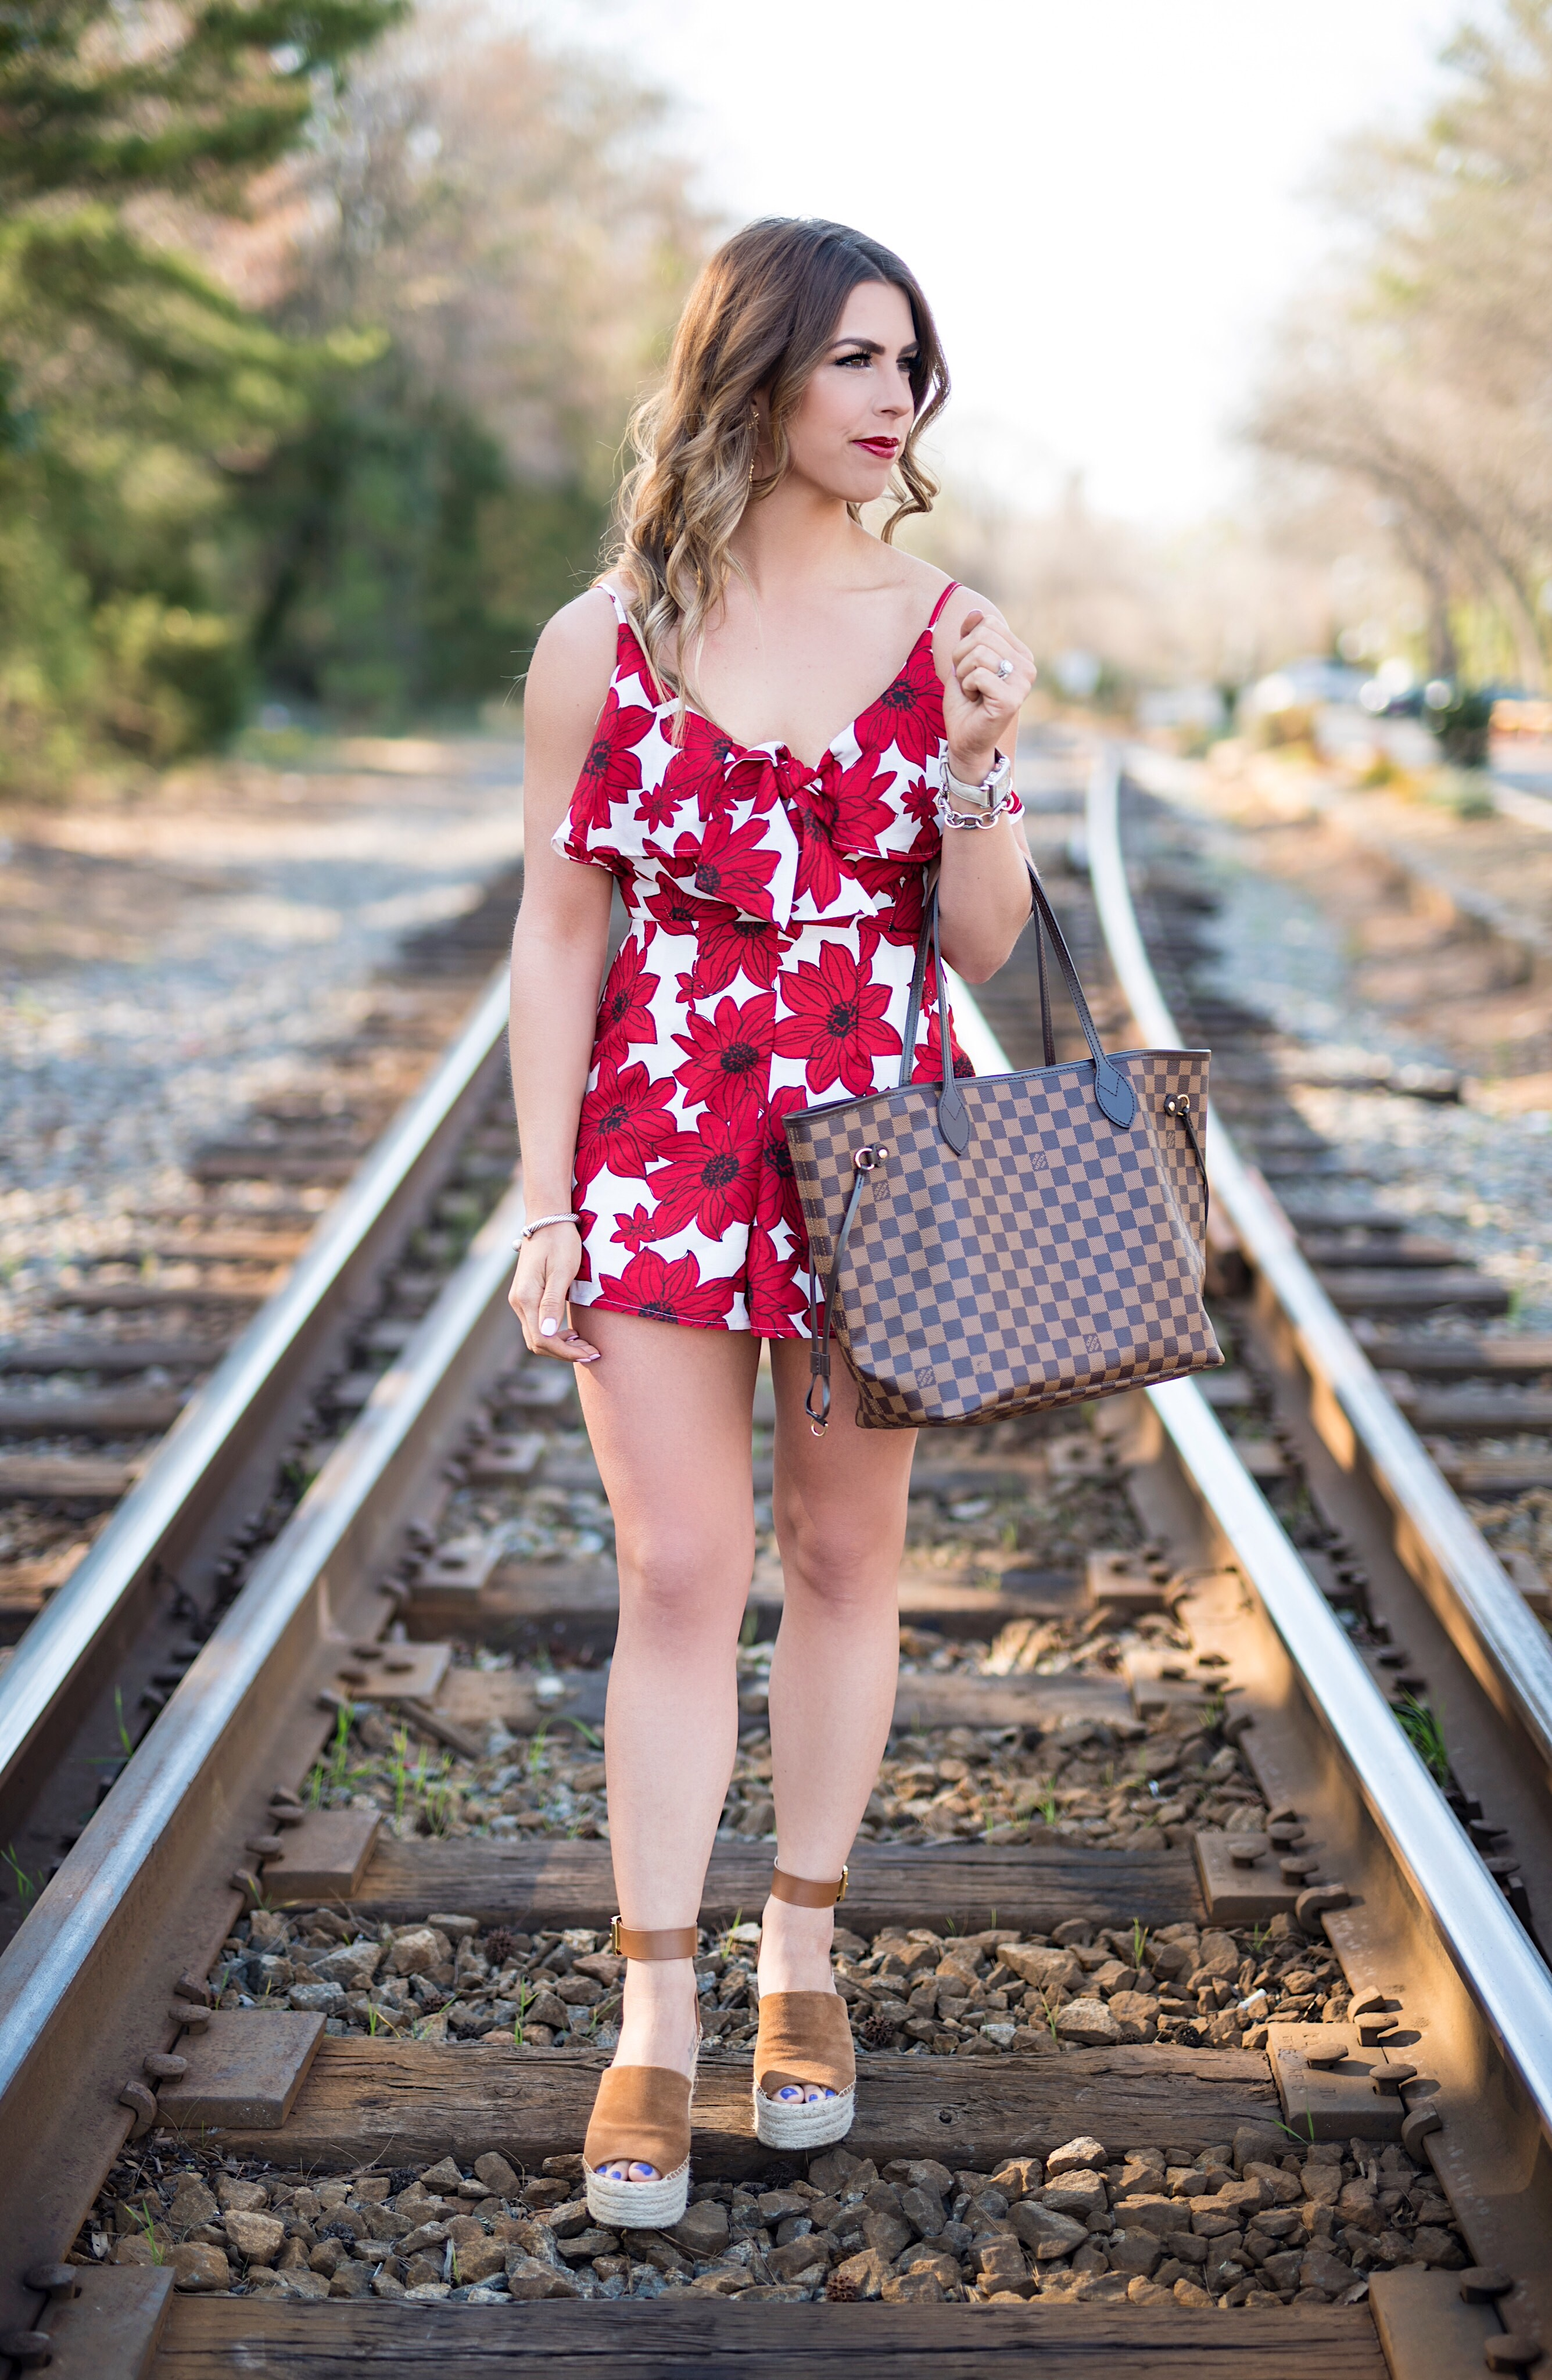 poppy romper, red romper, red floral romper, louis vuitton neverful, brown wedges, red florals, liketoknow.it app, the liketoknowit app, how to use the liketoknow.it app, why should i sign up for liketoknow.it, rewardstyle, rewardstyle bloggers, the liketoknowit app launch, liketoknow.it faq, questions regarding liketoknow.it, liketoknow.it faq